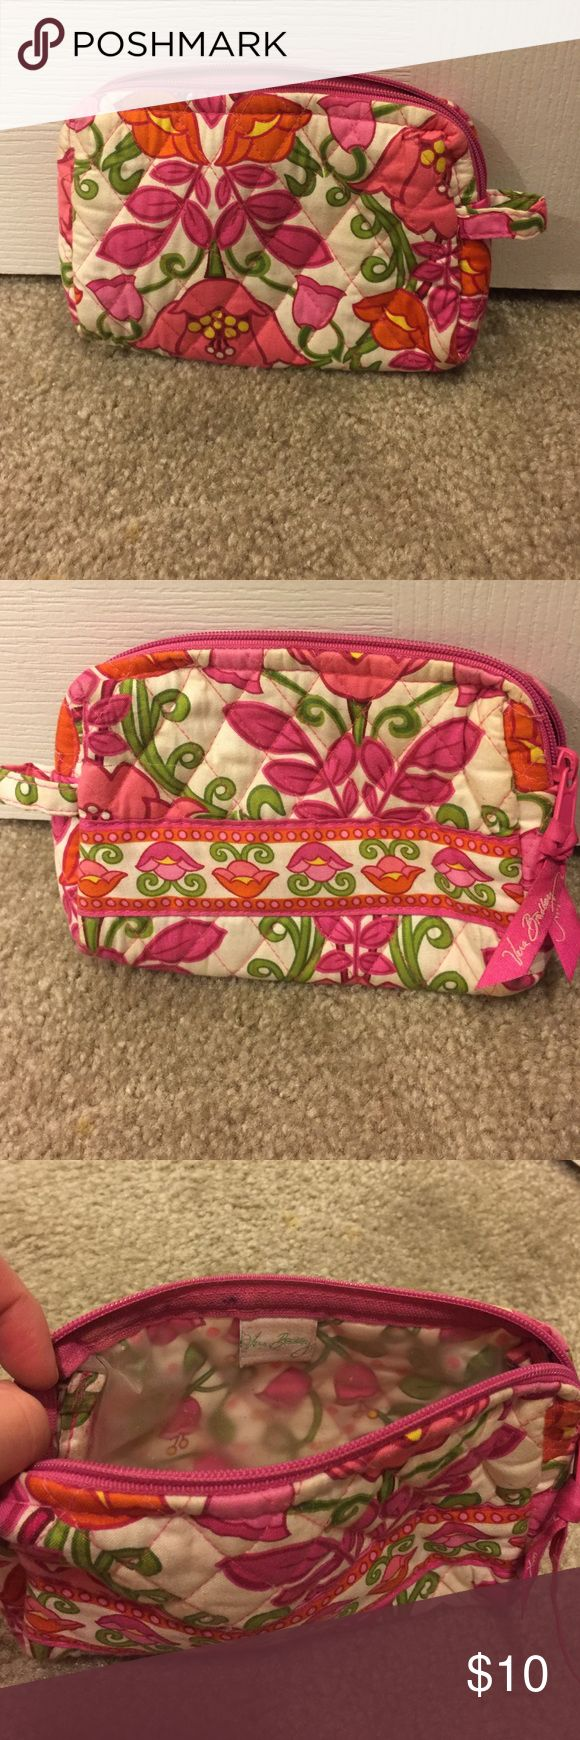 Vera Bradley make up pouch Pink, green, orange and white flower print. Purchased from the Vera Bradley store. Very clean. Comes from a smoke free home. Vera Bradley Bags Cosmetic Bags & Cases